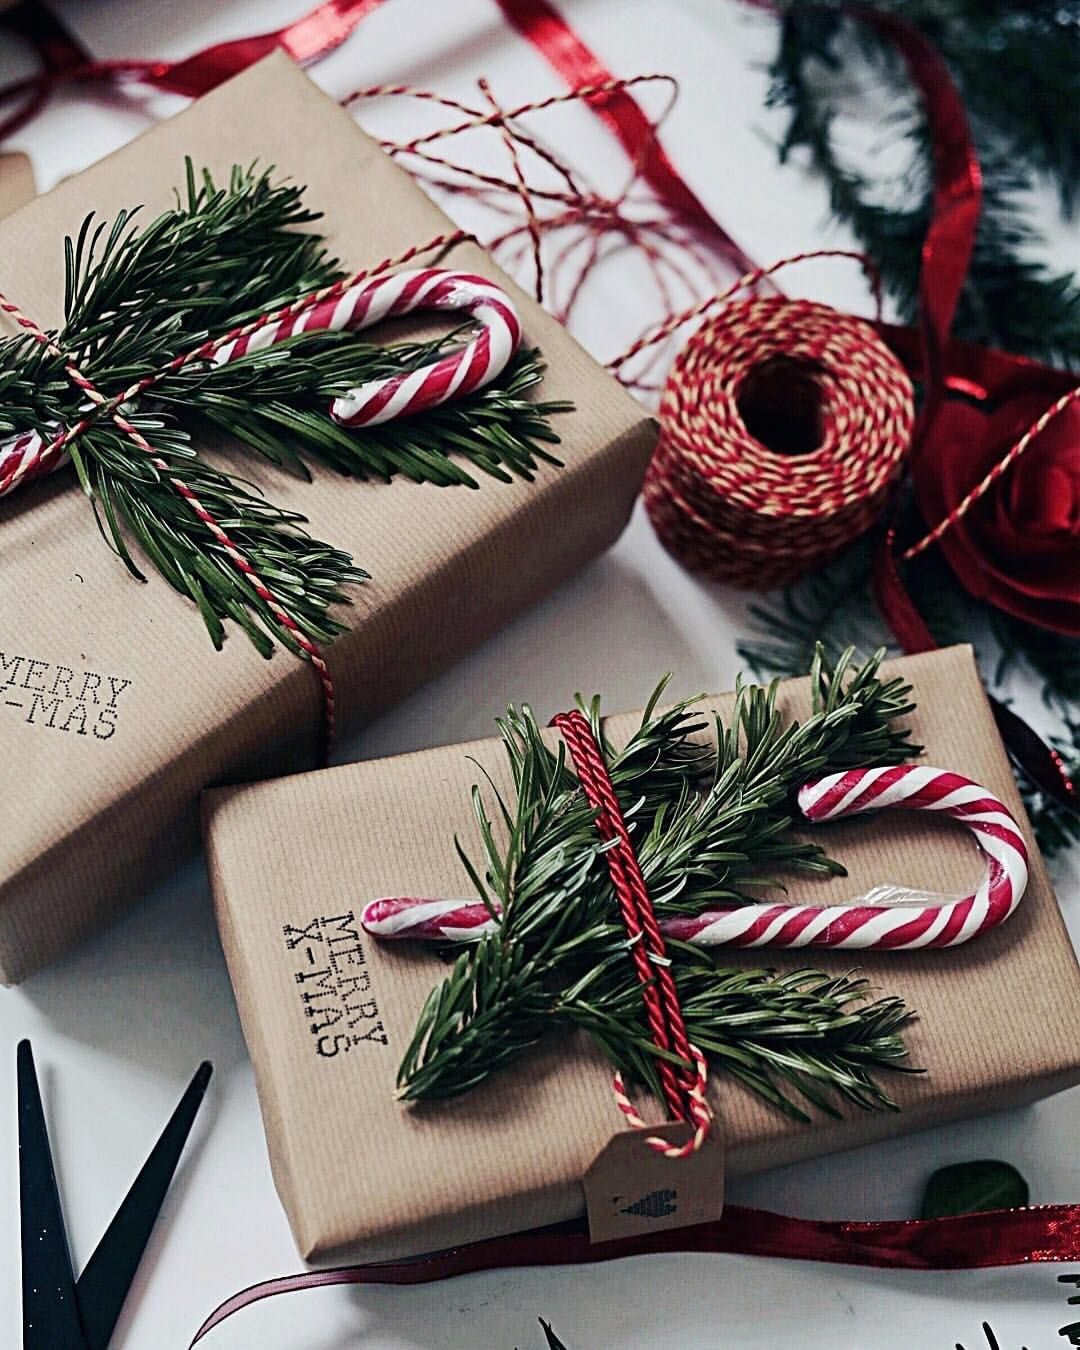 """Valerie   Mindfulness Coach on Instagram: """"Getting my Christmas gifts ready �️️ #Xmas #christmas #giftwrapping #diy #diychristmas #doityourself"""""""